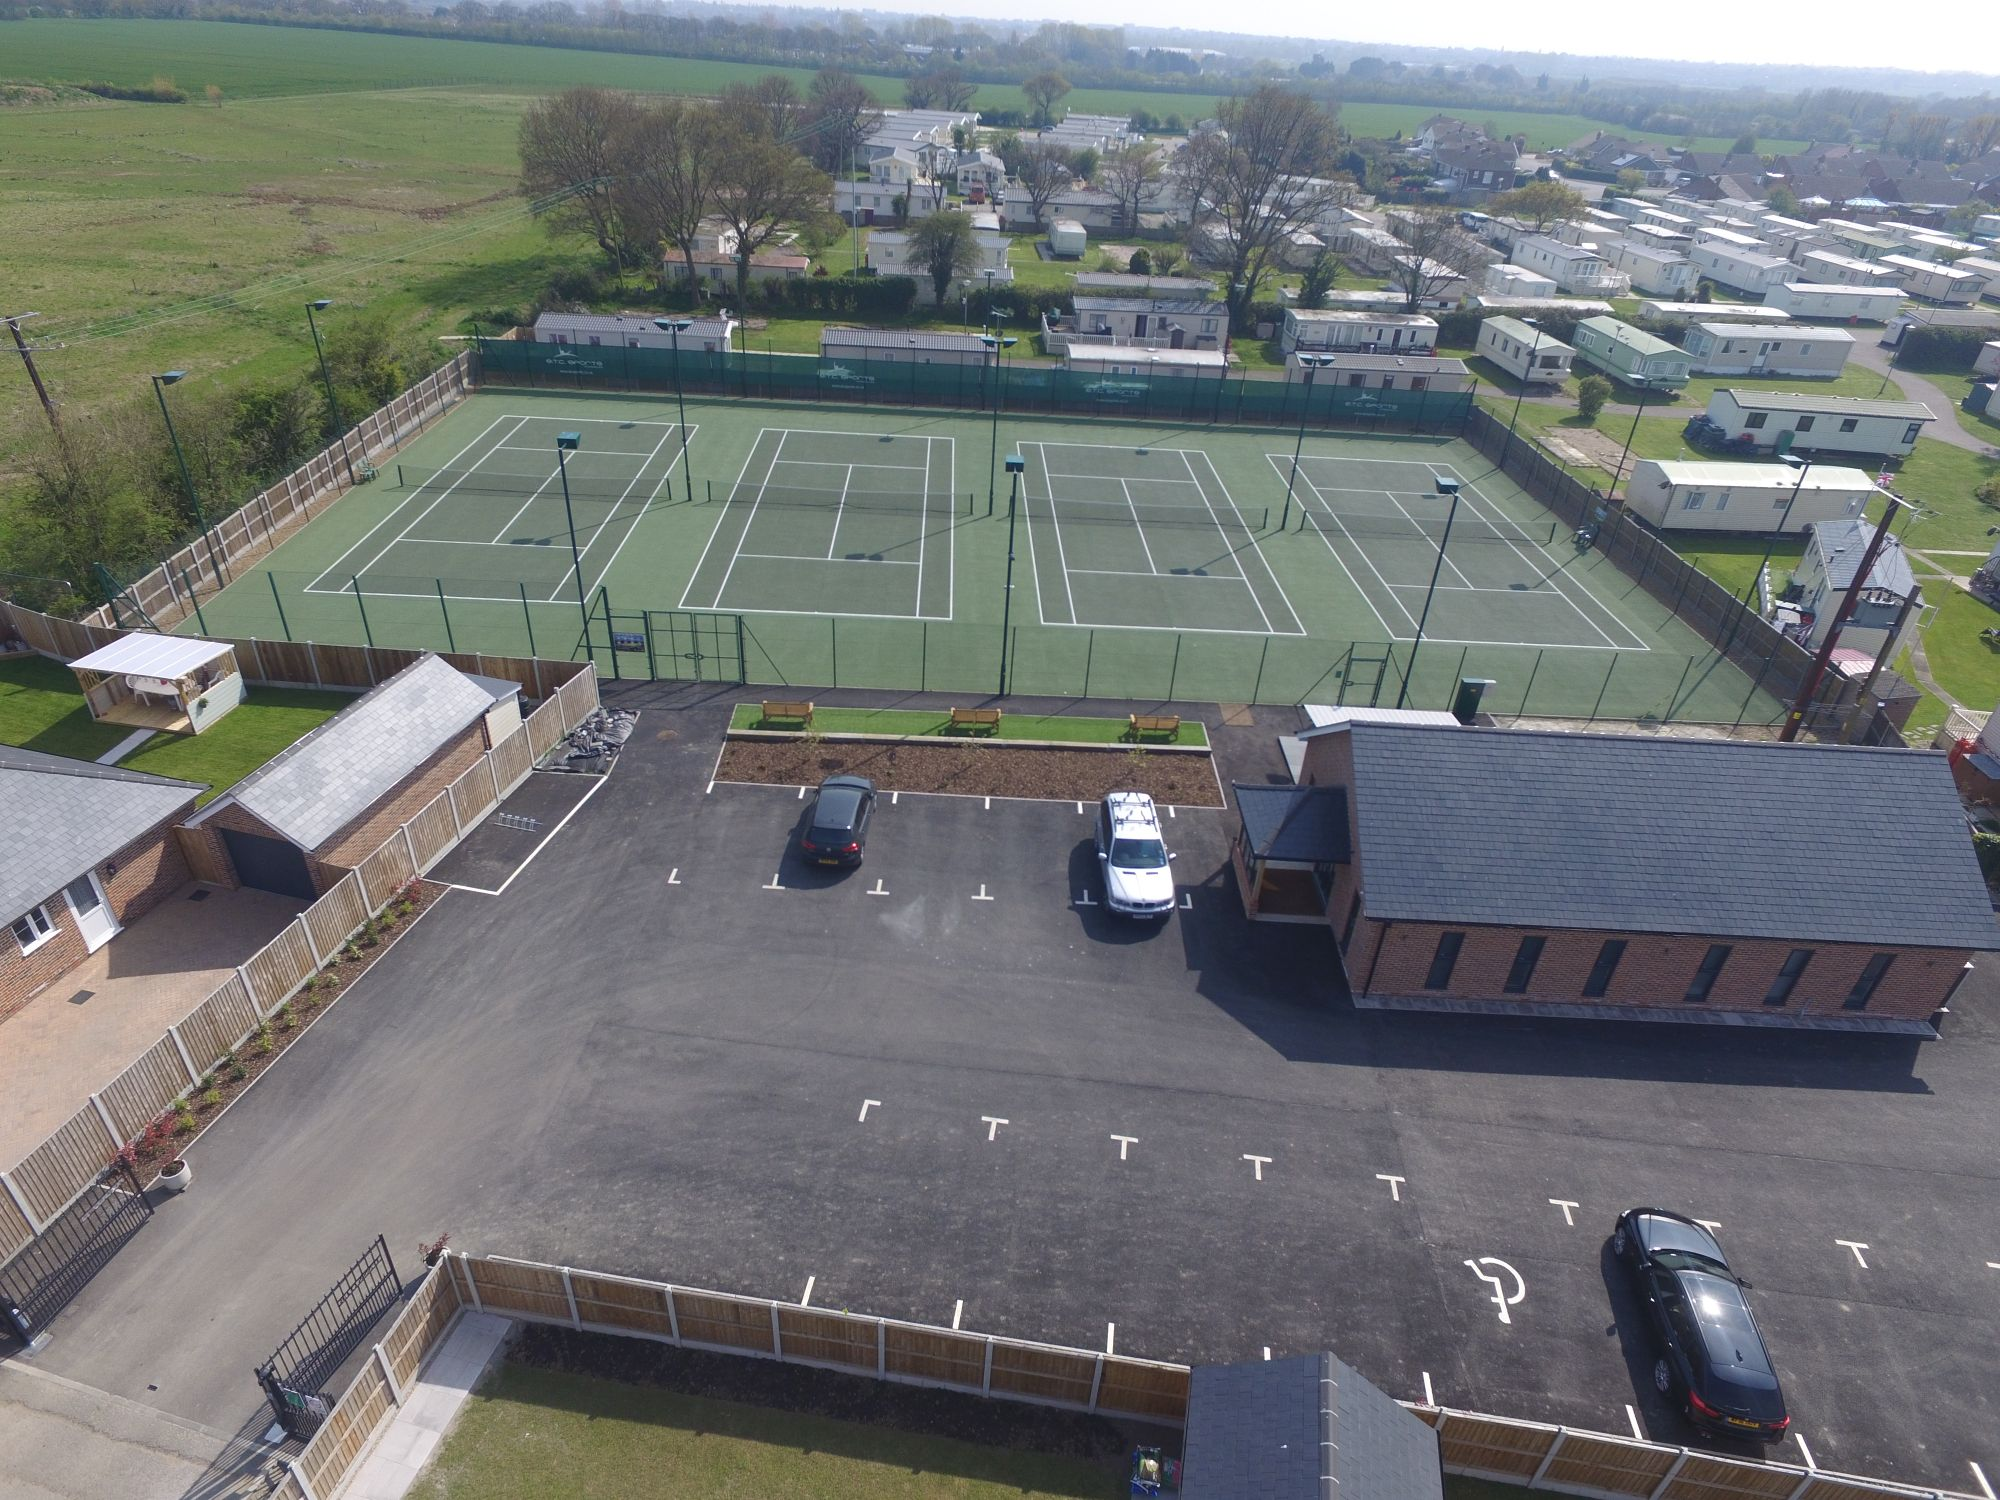 Little Clacton Tennis Club in Essex recently contracted ETC Sports surfaces to install new asphalt tennis court surfaces and facilities as part of a major upgrade